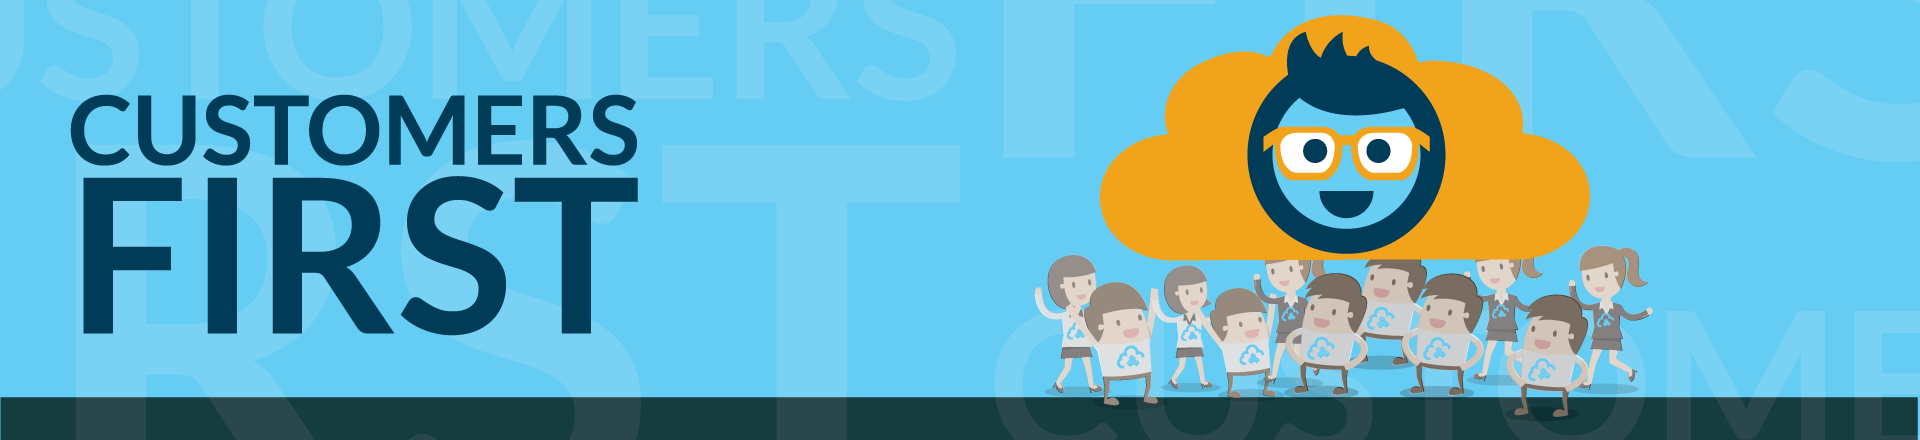 customers-first-blog-banner.png